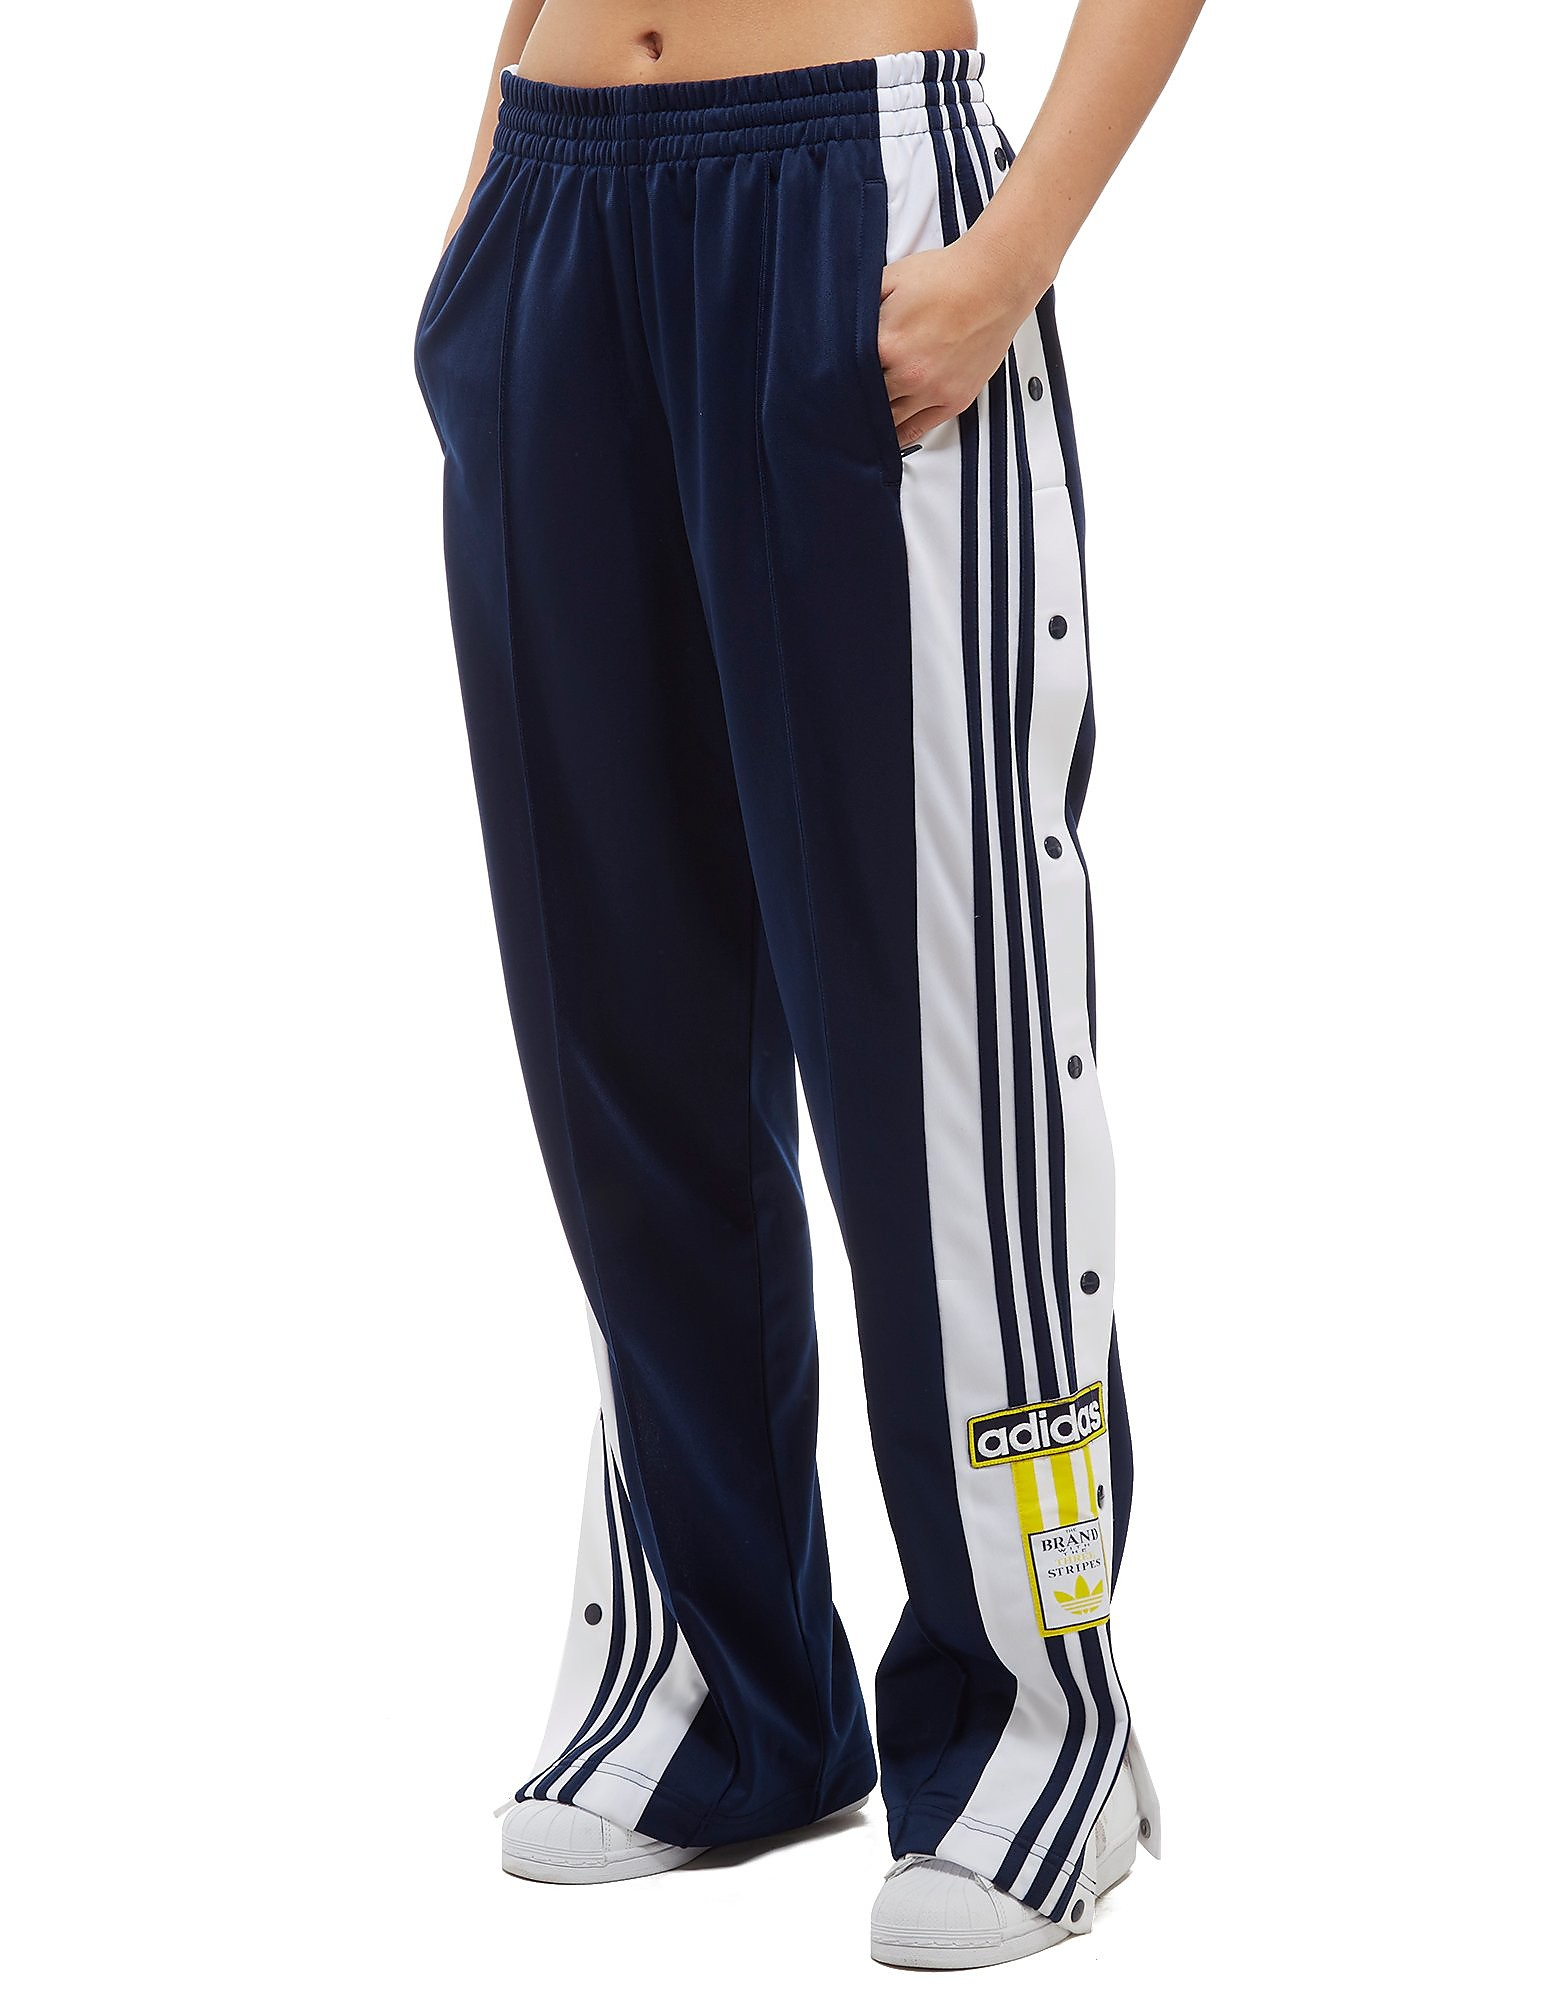 adidas Originals Adibreak Popper Pants